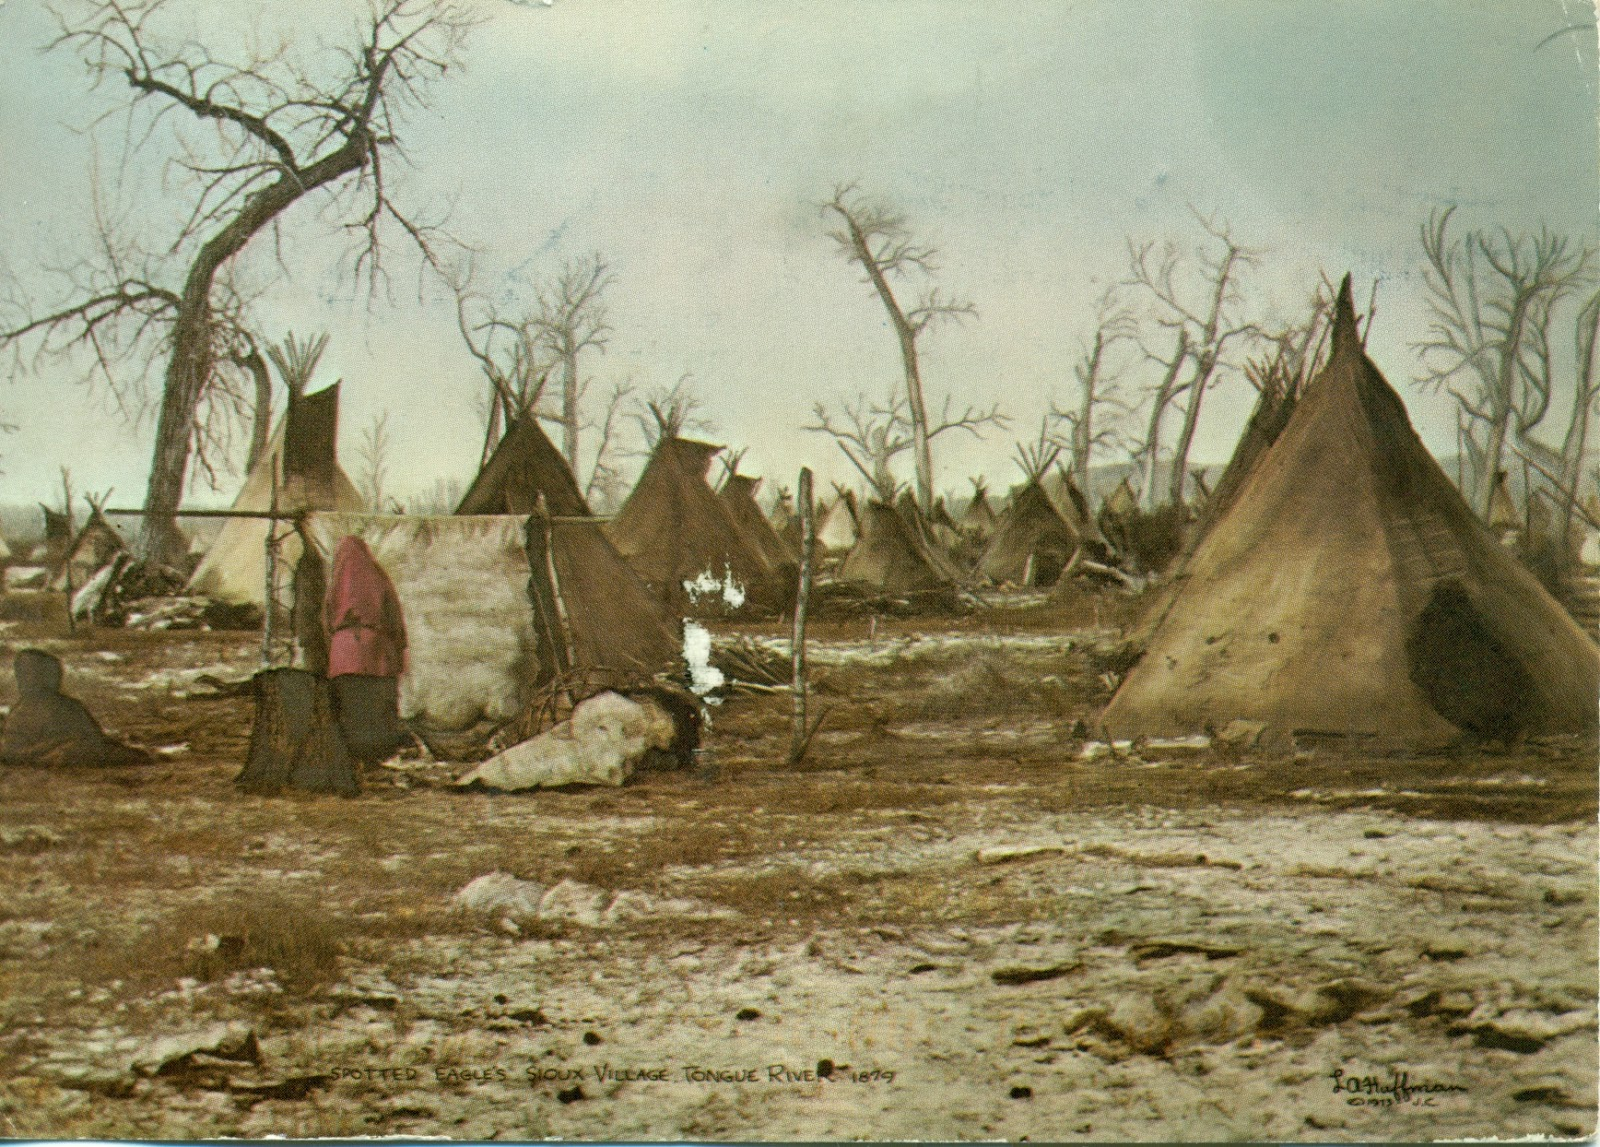 an introduction to the history and culture of the mandan indians Mandan indians __ article on the mandan tribe and their interactions mandan indian tribe history __ a good look at mandan history along with links mandan language and the mandan indian tribe __ you will find mandan language information and an introduction to the culture of the.